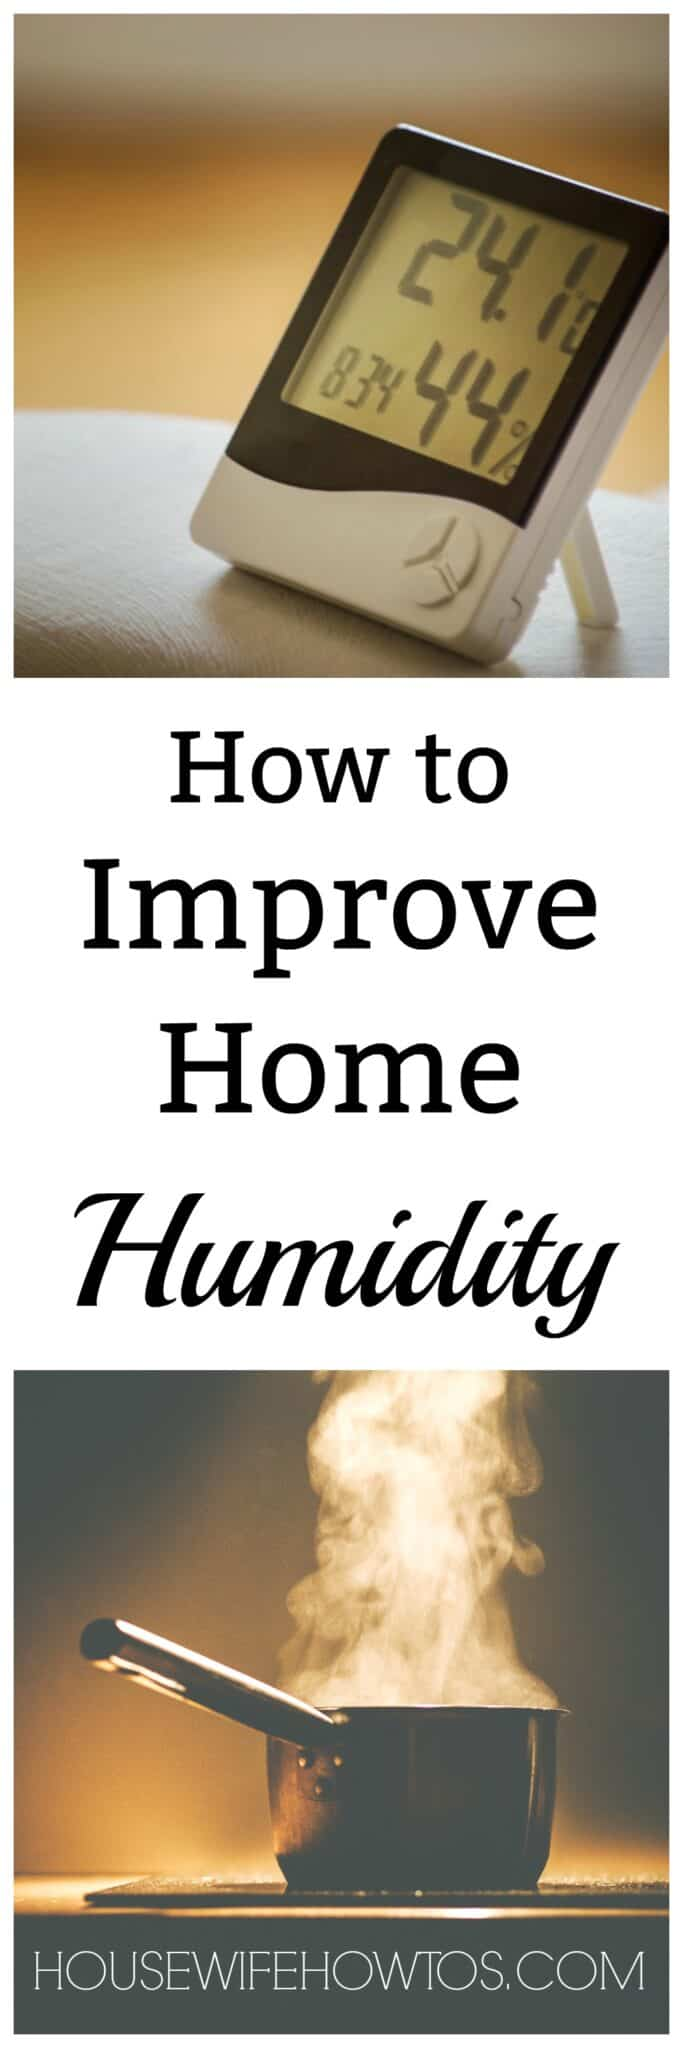 How To Improve Home Humidity Housewife How To 39 S